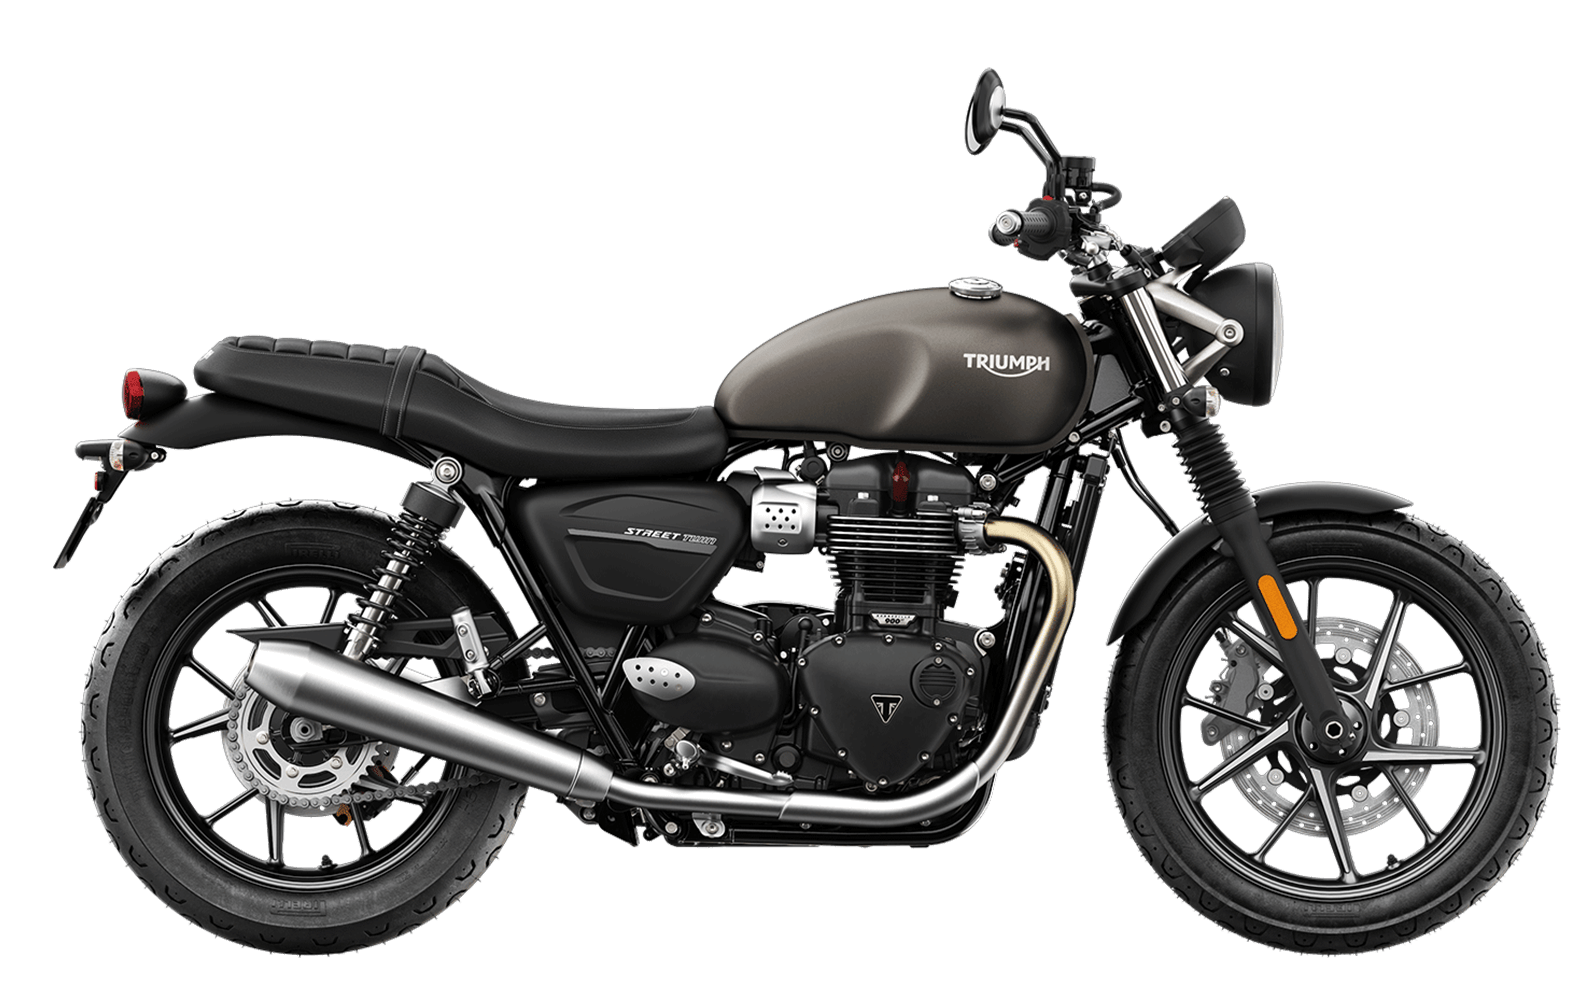 2019 Triumph Street Twin in Matte Ironstone